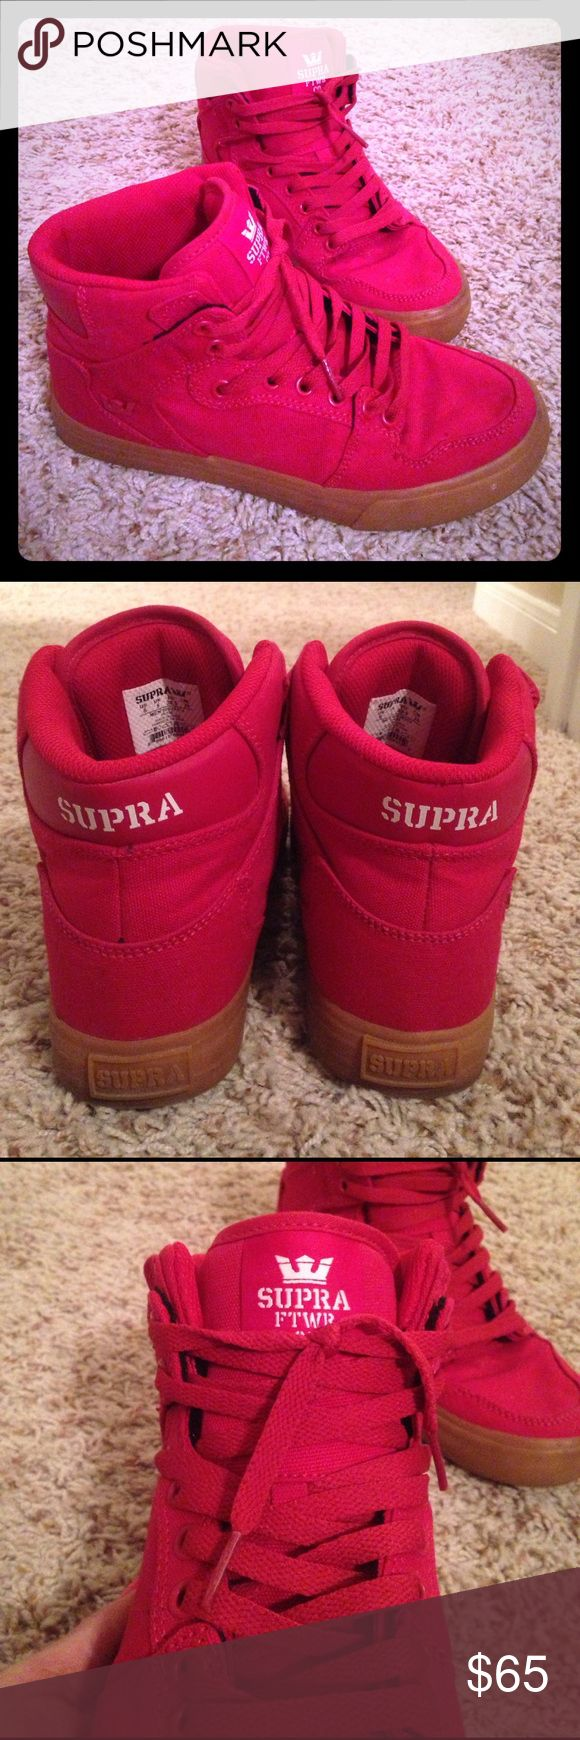 Supra hi-tops Cherry red hi top sneakers. Gum sole. 9/10 condition.  Men's 6 - women's 7.5. Supra Shoes Athletic Shoes